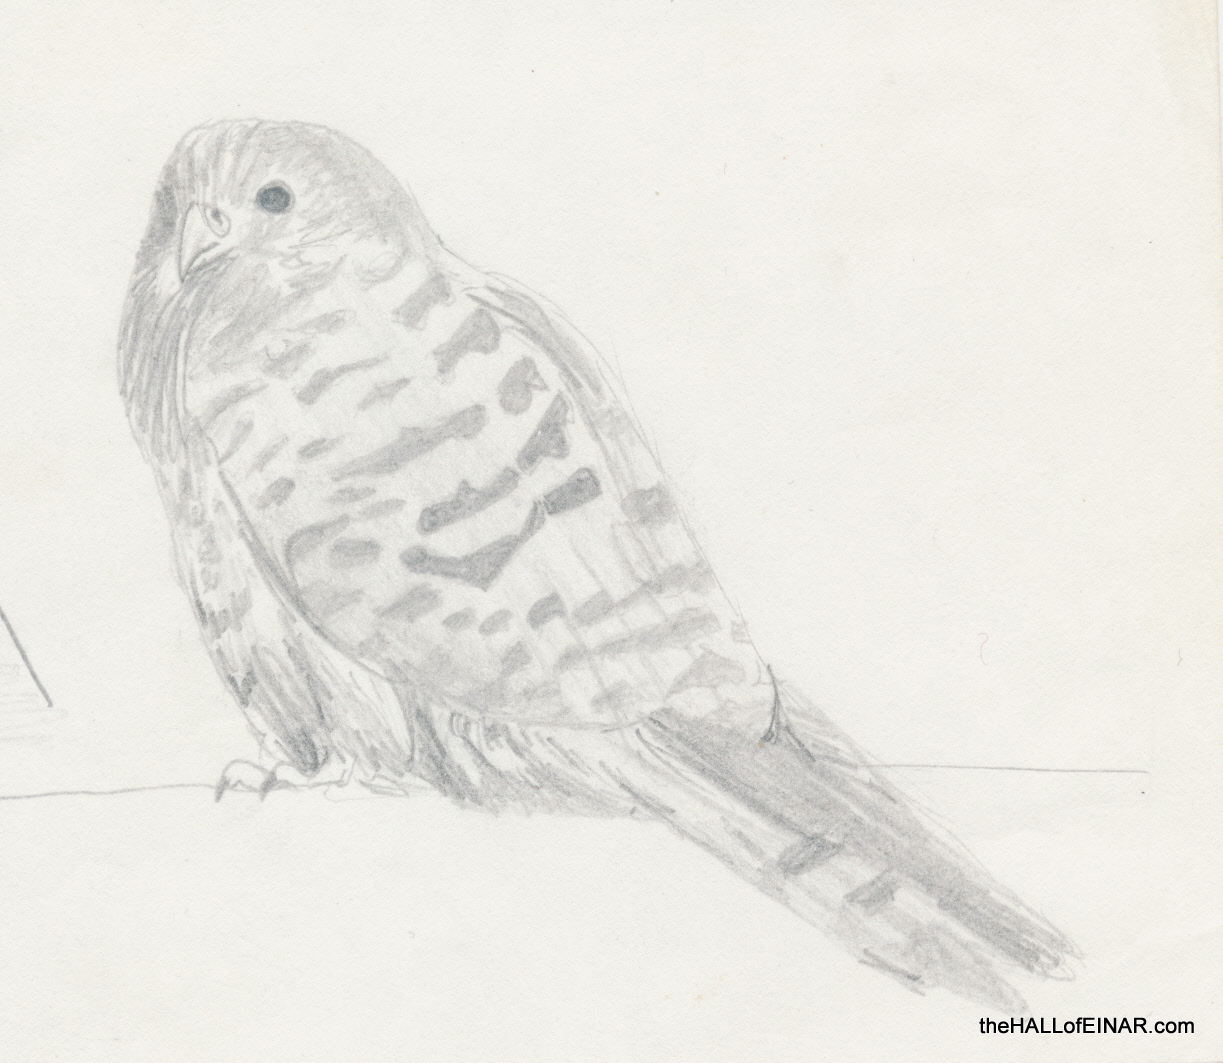 Kestrel - The Hall of Einar - drawing (c) David Bailey (not the)